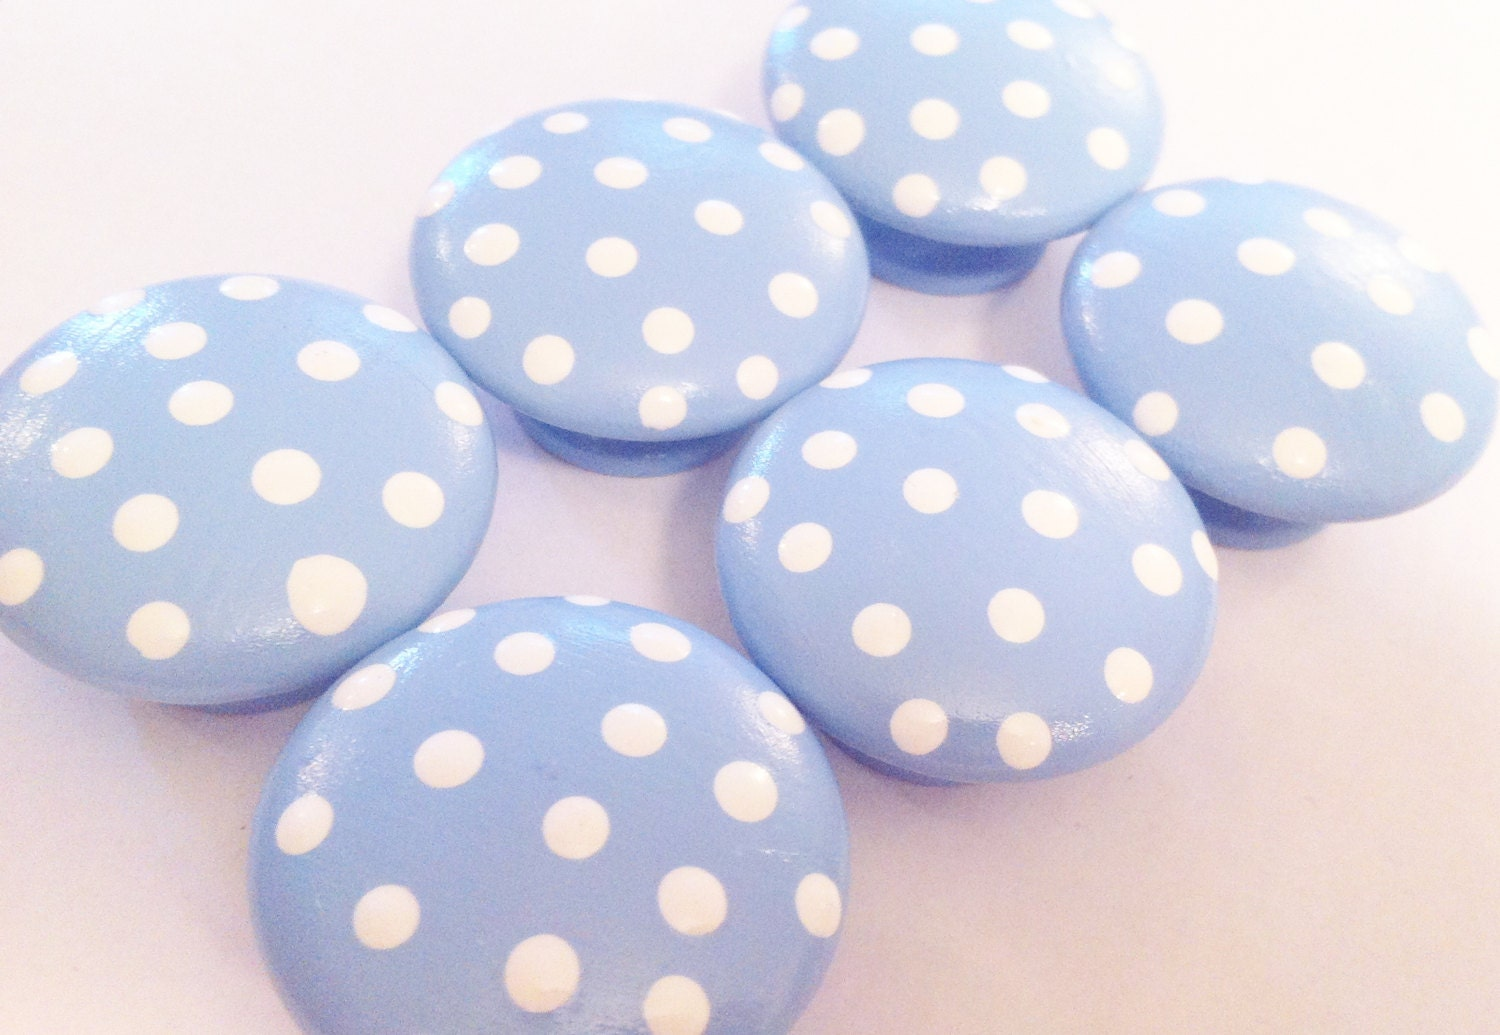 Baby Dresser Knobs and Handles. Cute Kids Drawer Pulls to Match Your Theme. We have ideas for kids drawer pulls and decorative dresser knobs that you can make yourself that will give your recycled nursery furniture a fresh new look.